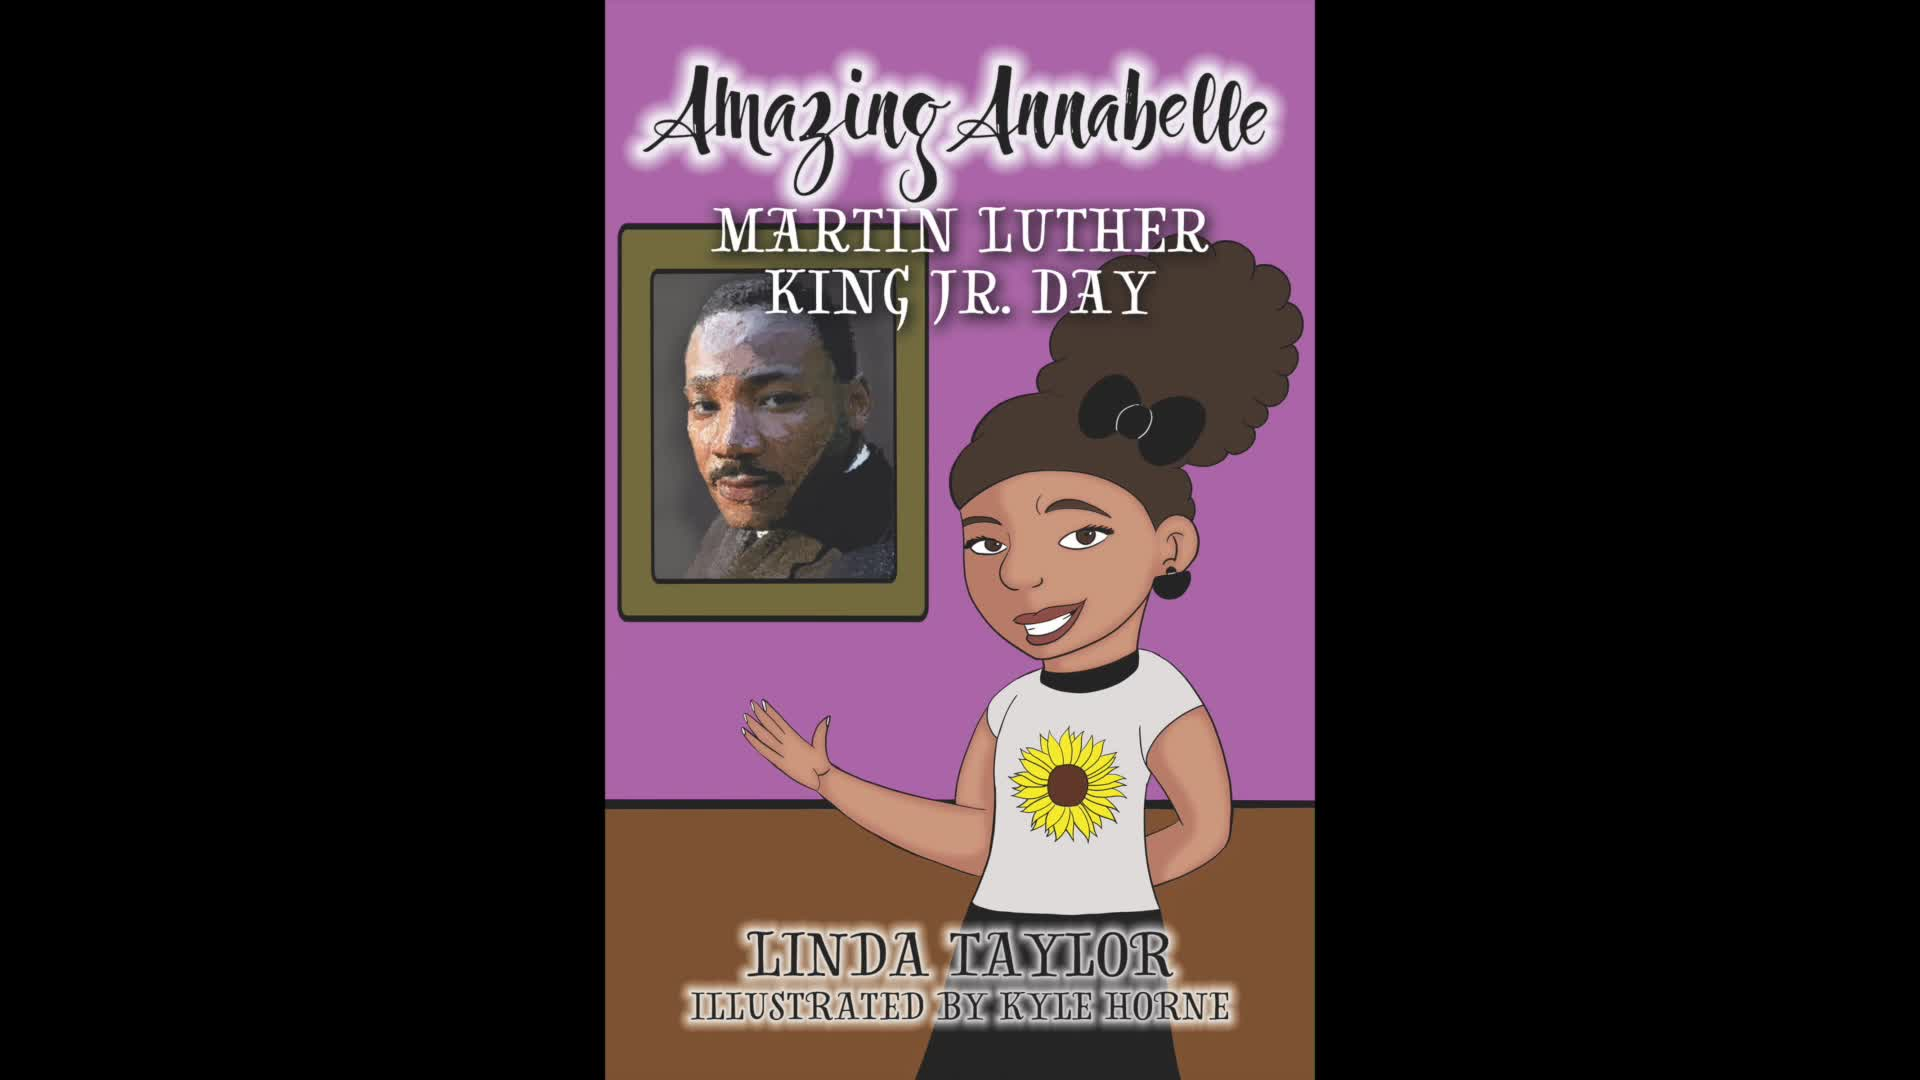 Amazing Annabelle Martin Luther King Jr Day Chapter 10